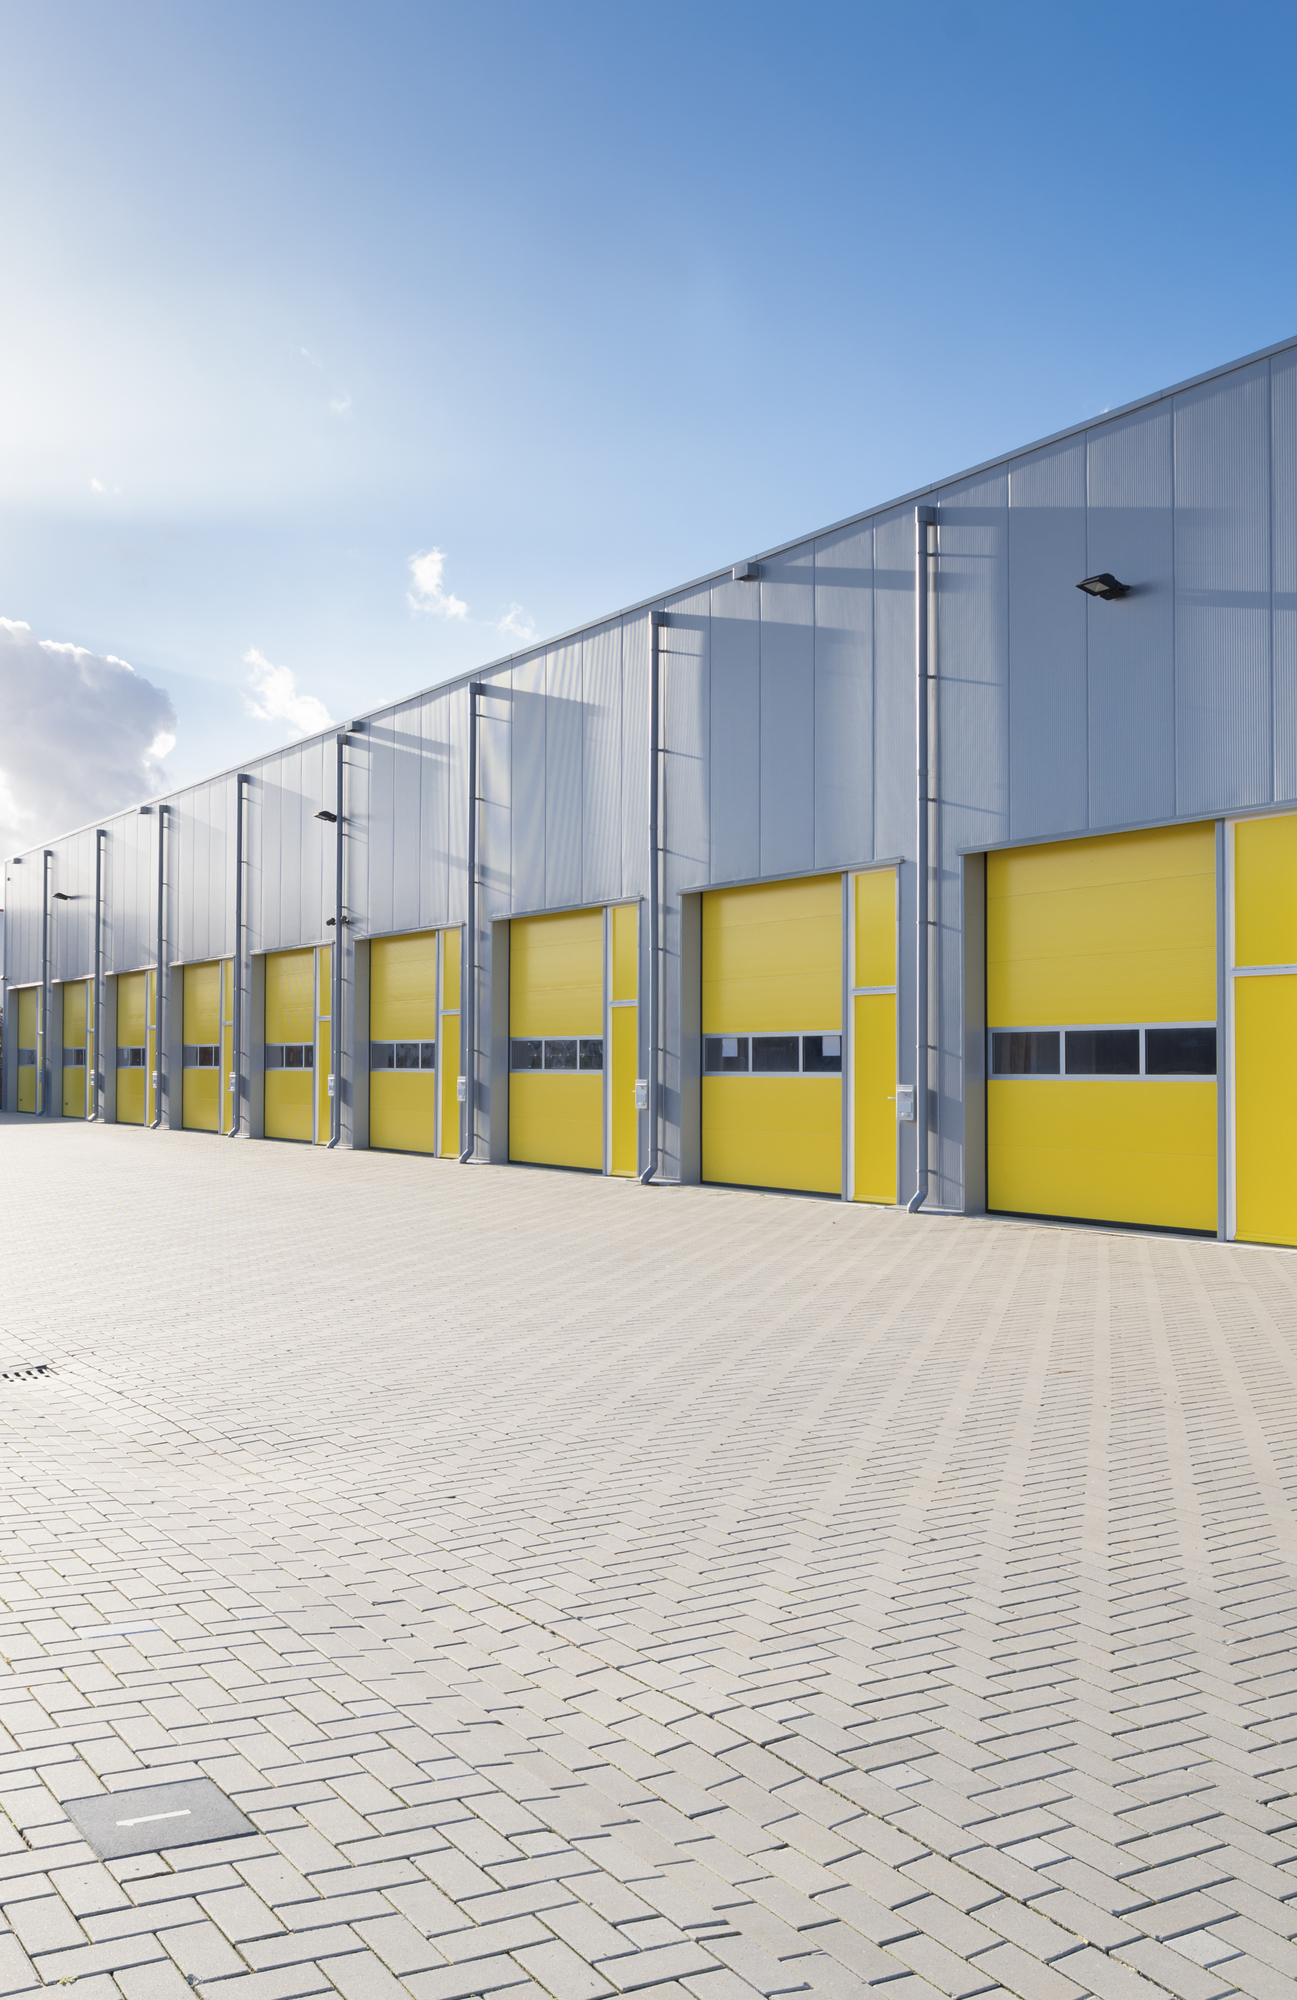 Finding a Commercial Warehouse Space for Lease in Brisbane